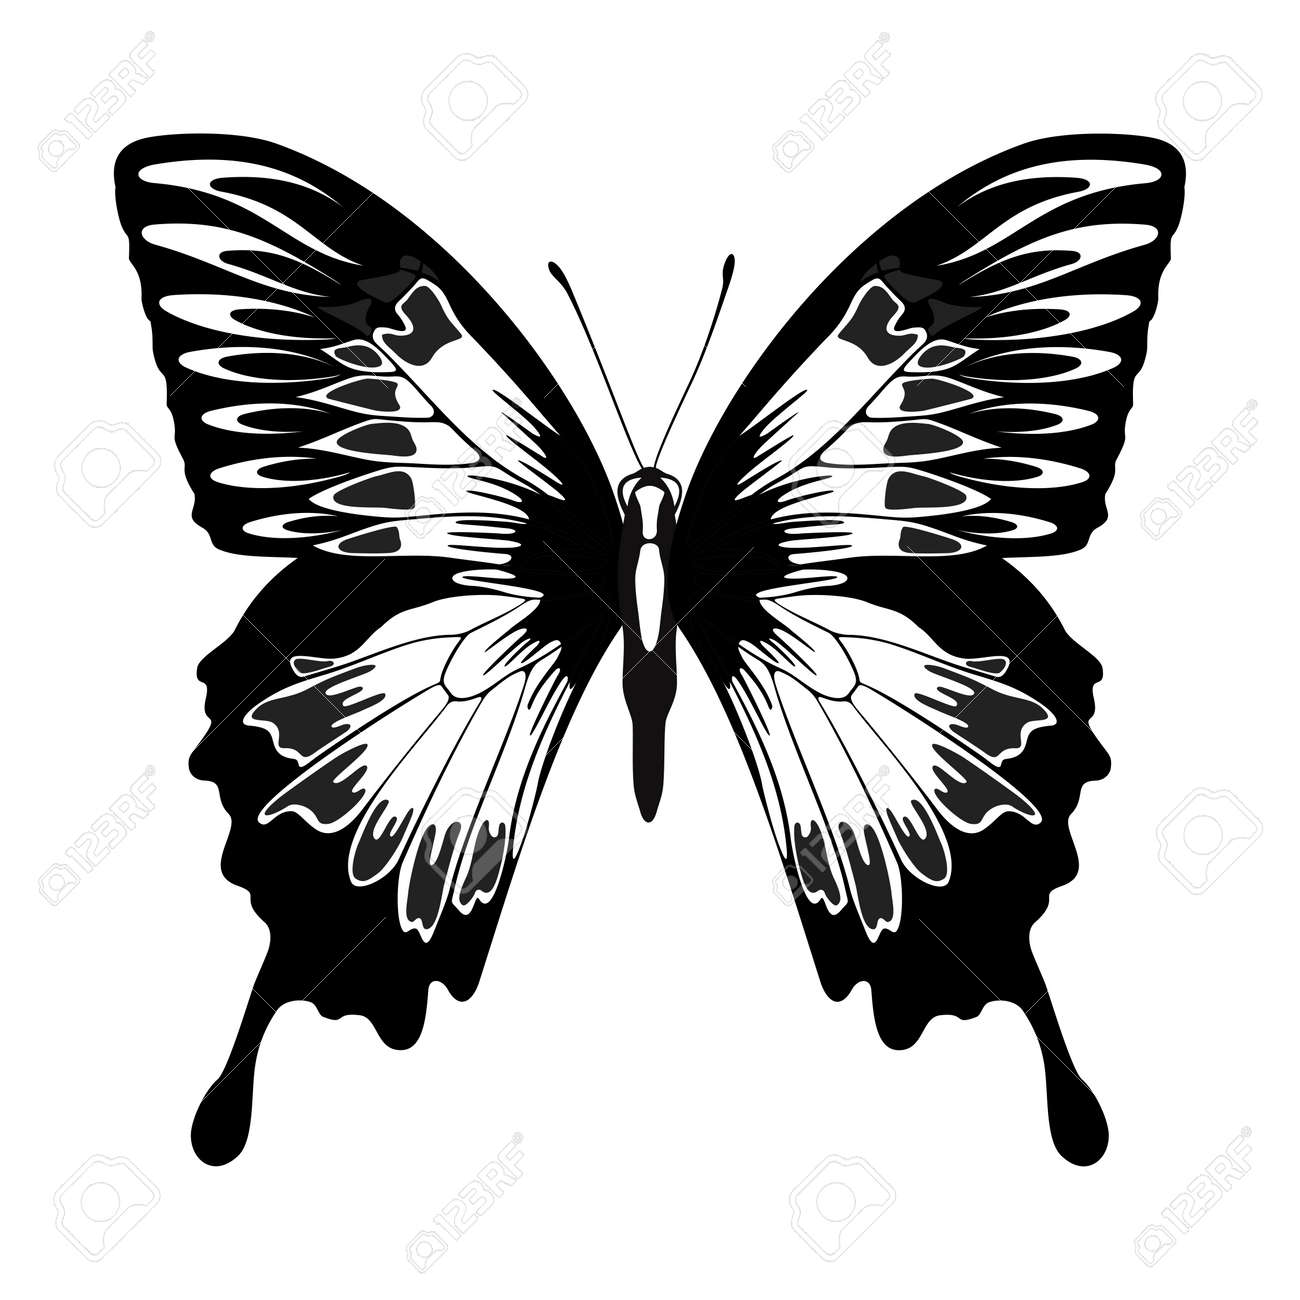 vector monochrome butterfly outline silhouette illustration